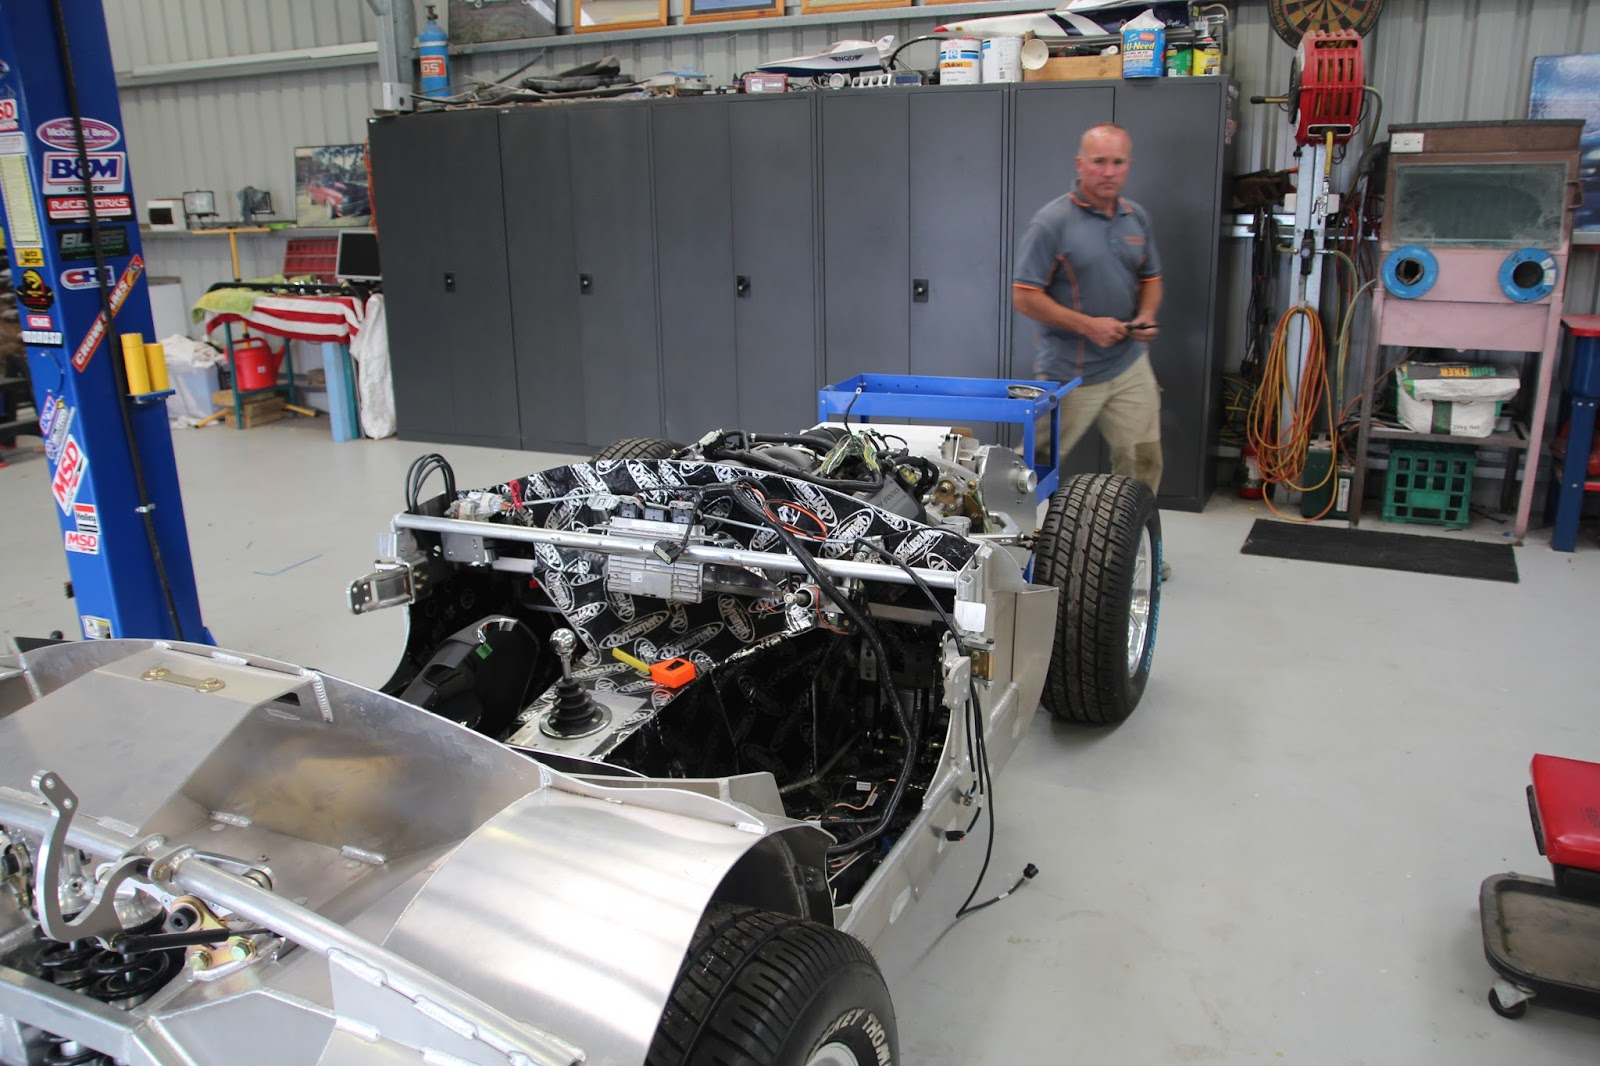 Cobra Dreaming Getting A Little Further Advanced Wiring Harness The Auto Elec Managed To Get Ford Racing Through Cabin Via Large Hole In Top Of Transmission Tunnel Which Will Require